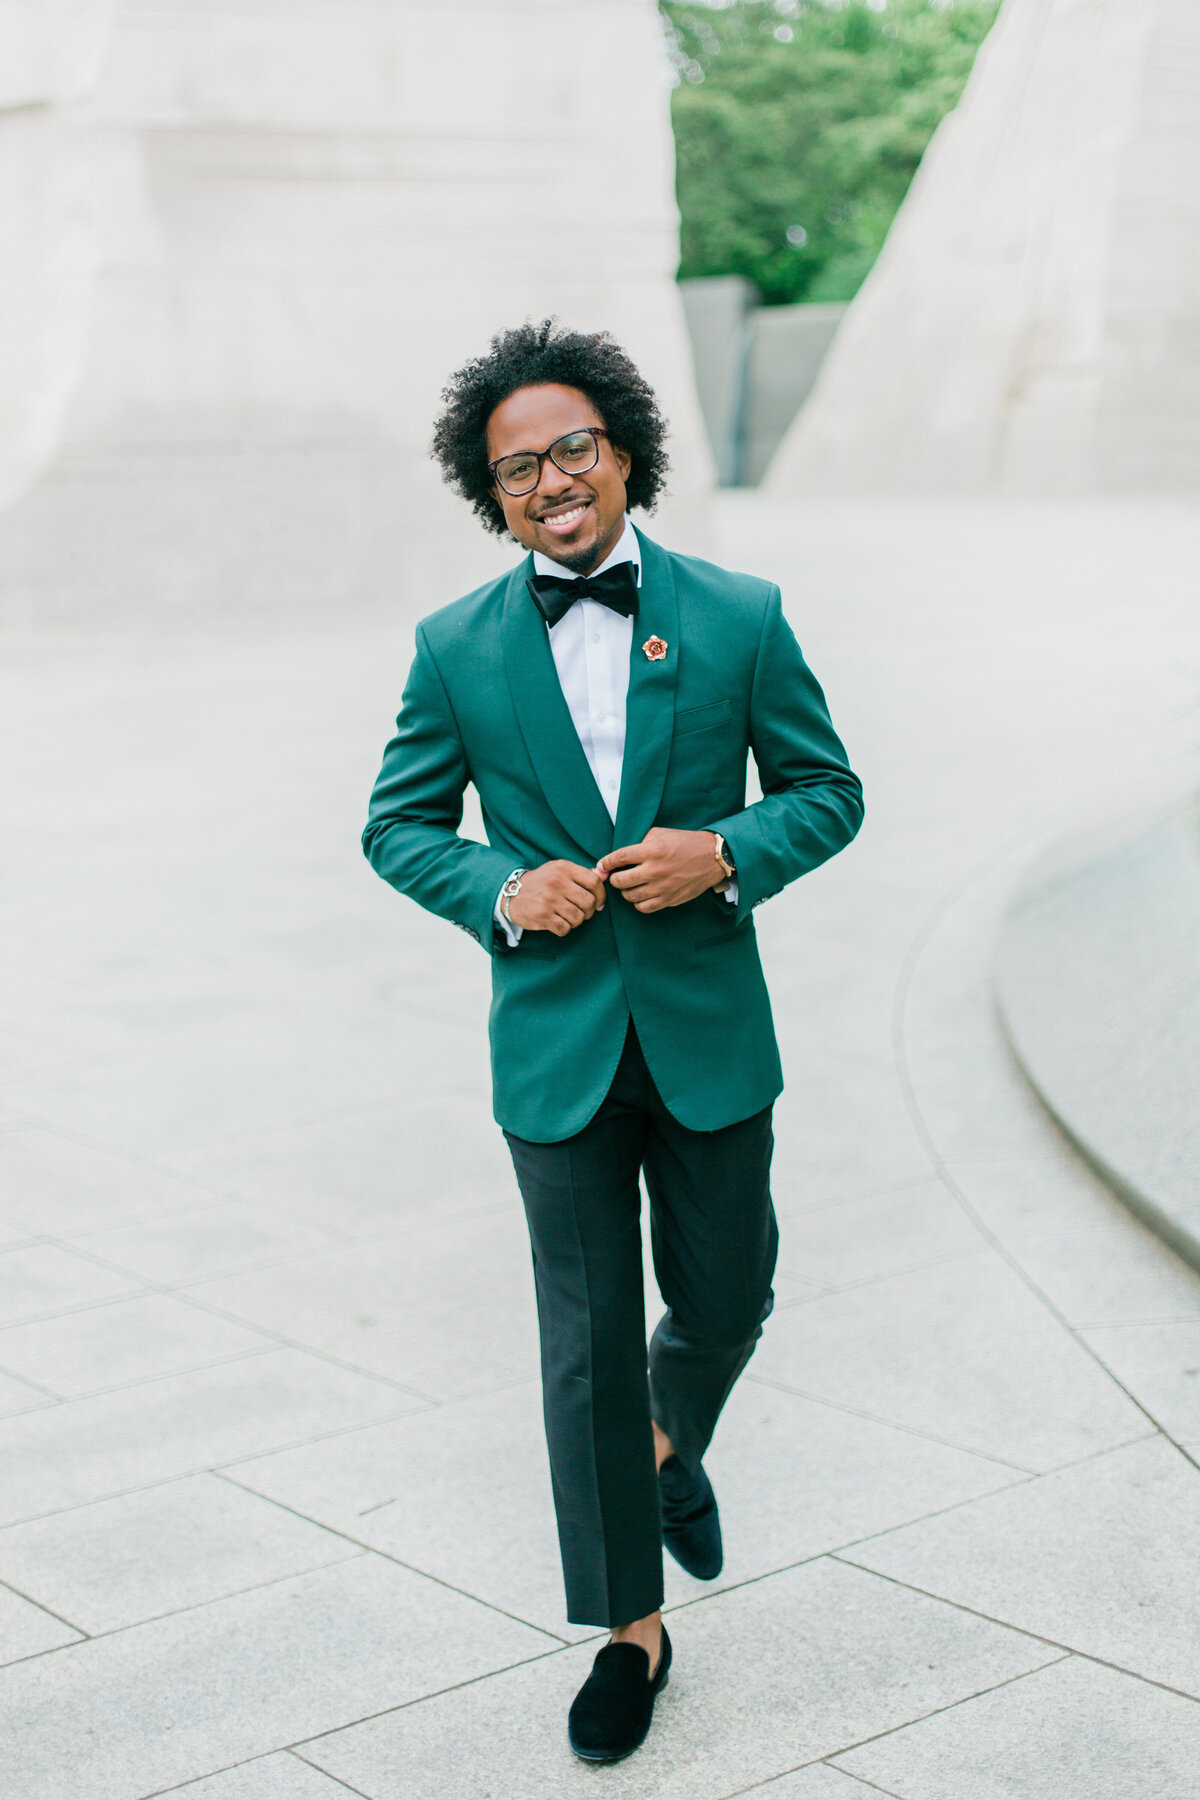 Solomon_Tkeyah_Micro_COVID_Wedding_Washington_DC_War_Memorial_MLK_Memorial_Linoln_Memorial_Angelika_Johns_Photography-8704